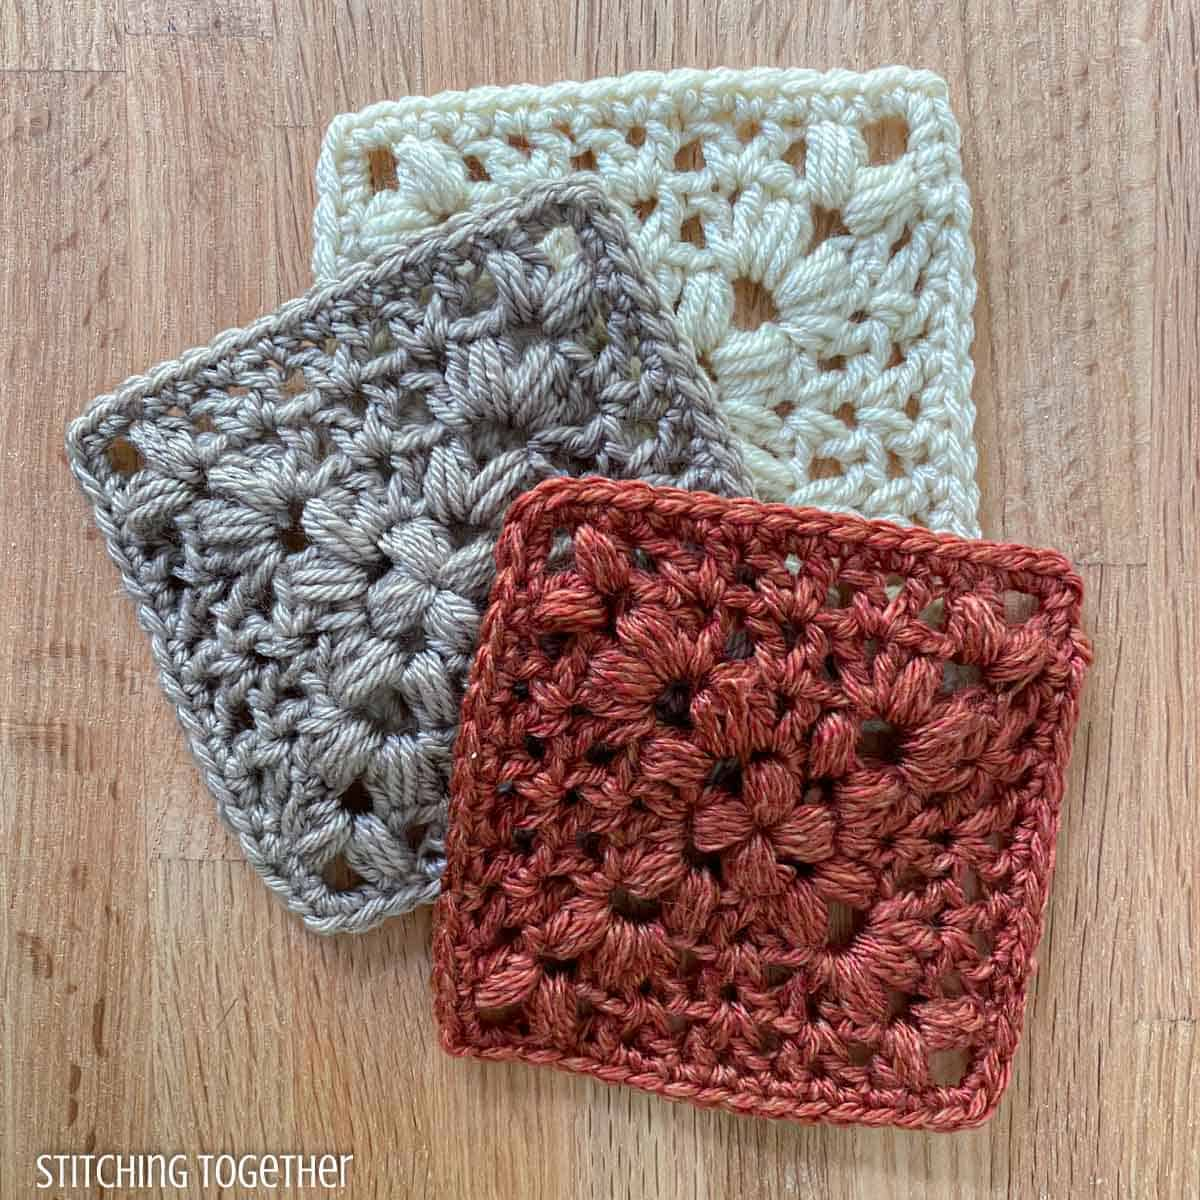 3 crochet granny squares messily stacked on top of each other